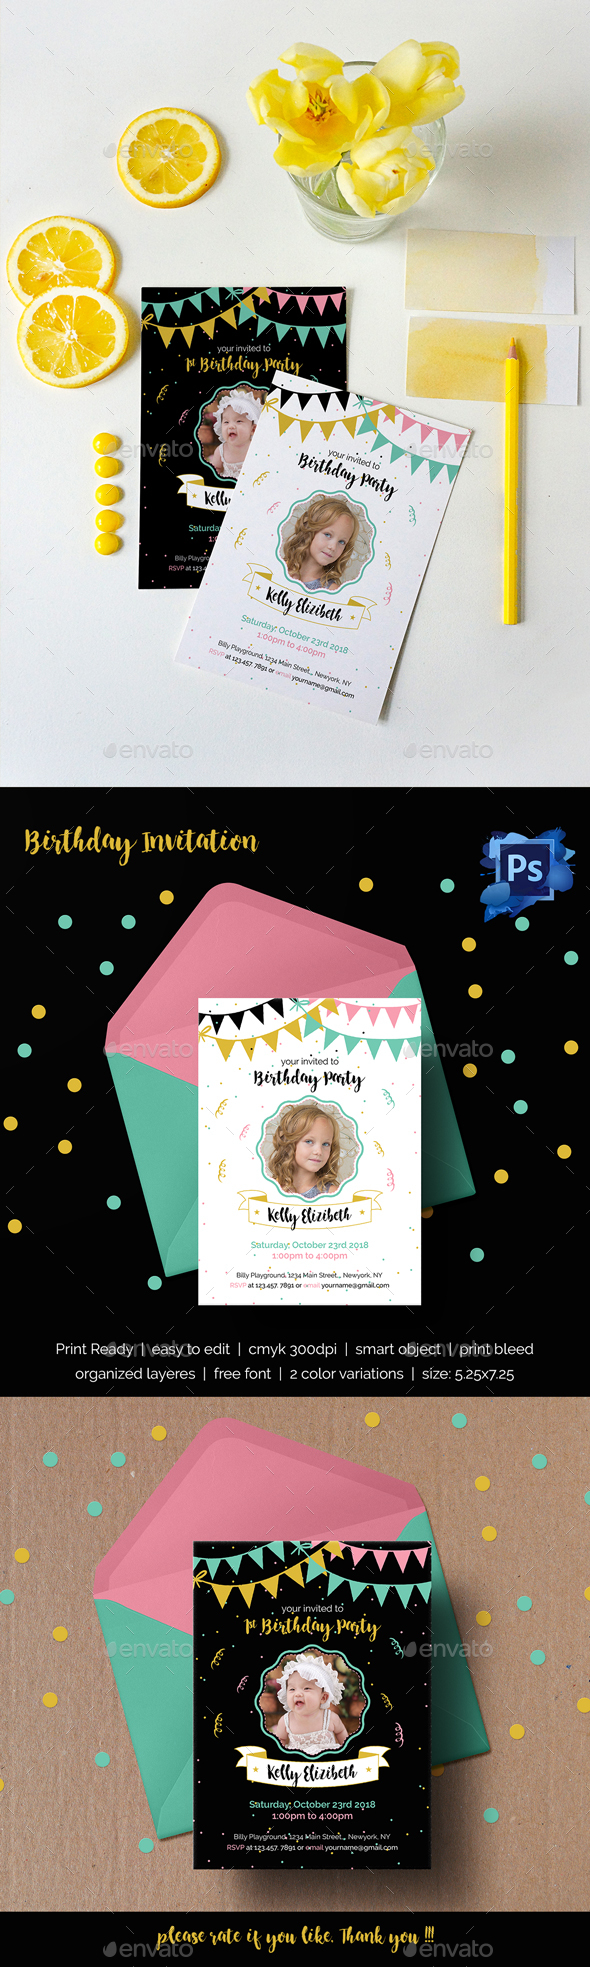 Birthday Invitation - Invitations Cards & Invites